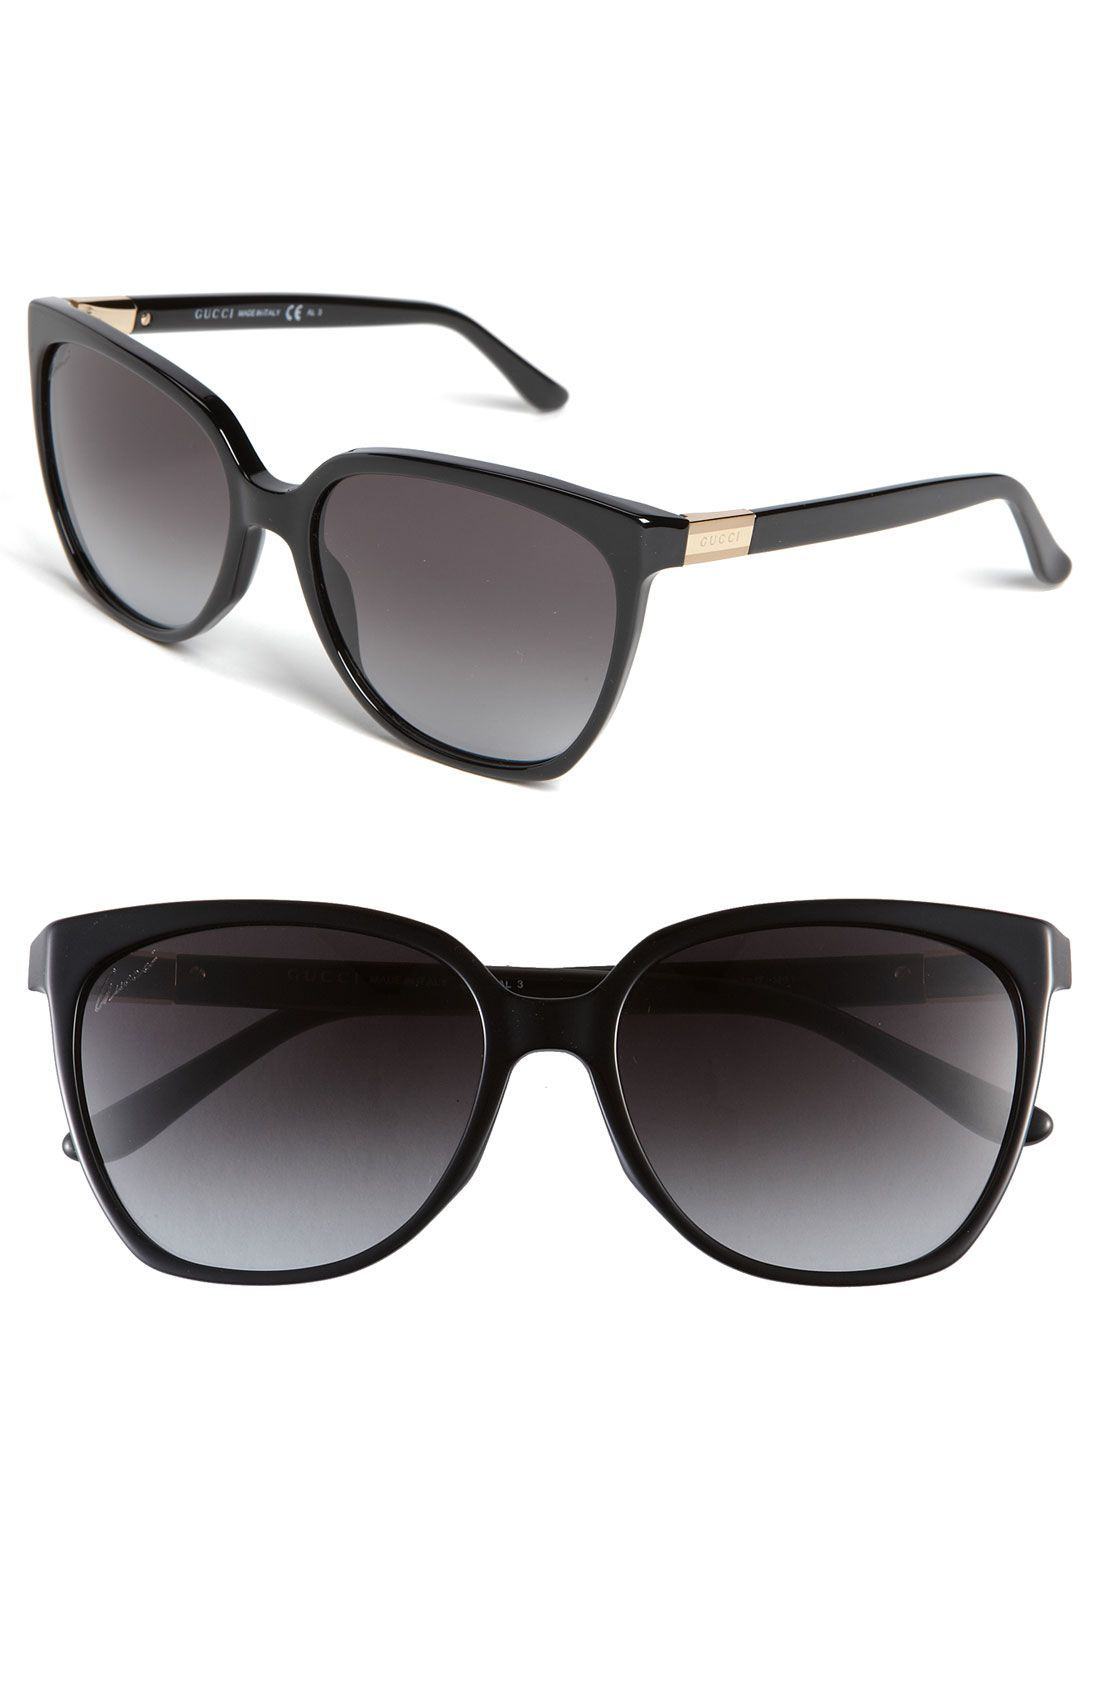 a9588a98f26cd Gucci 57mm Oversized Sunglasses - black OR havana  )